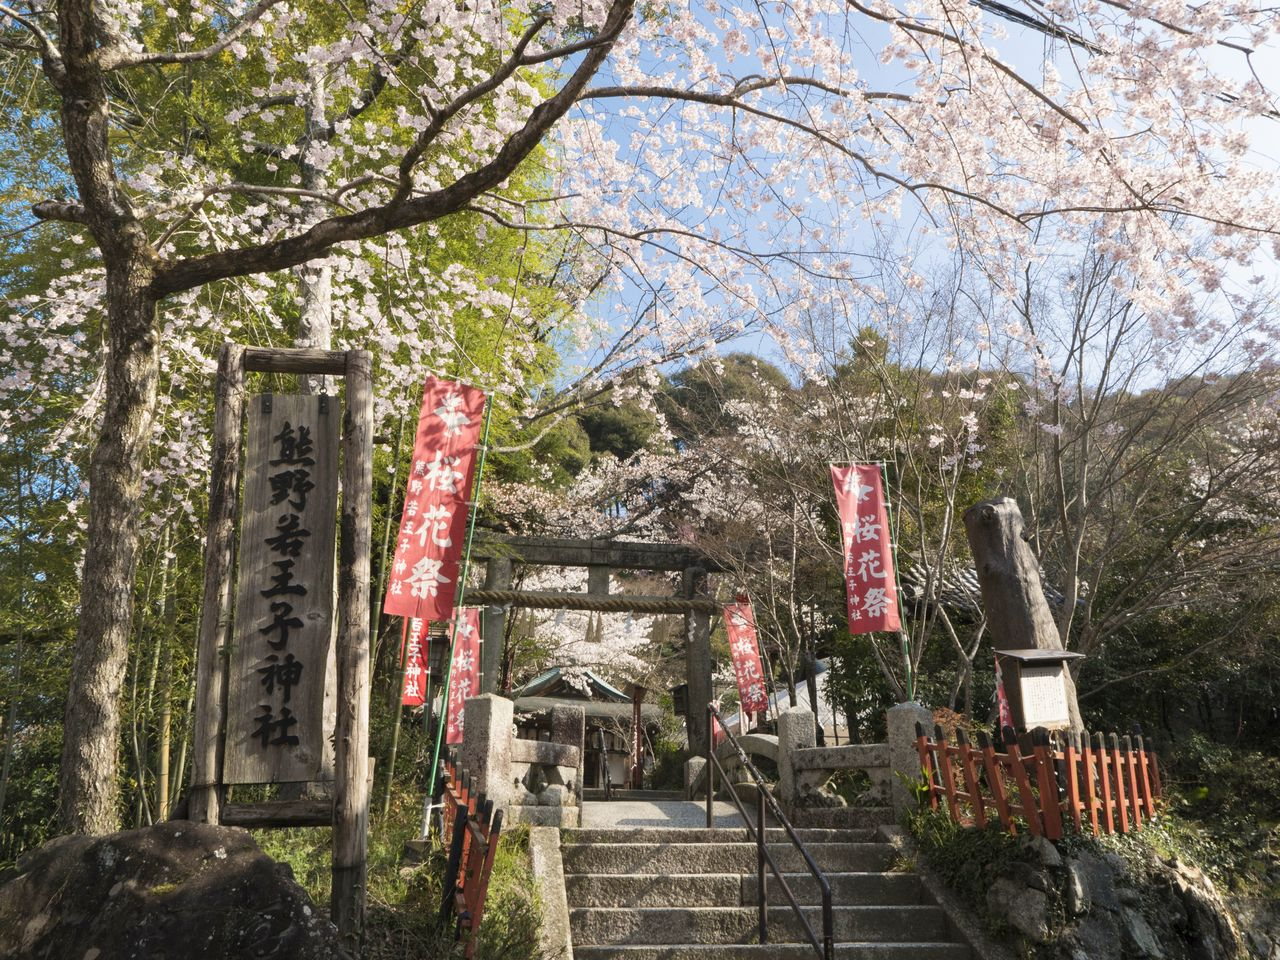 Kumano Nyakuōji Shrine is located near the southern end of the Philosopher's Walk.